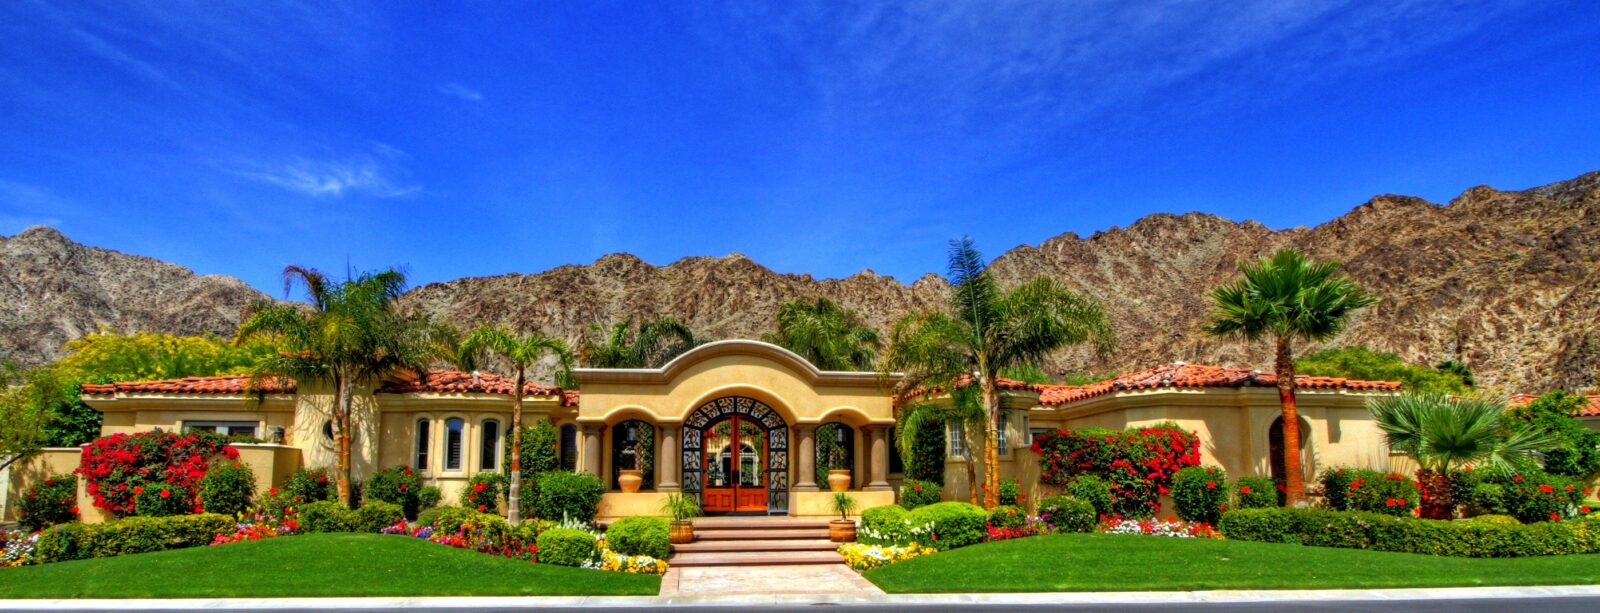 Sprawling, sunny, Spanish style estate